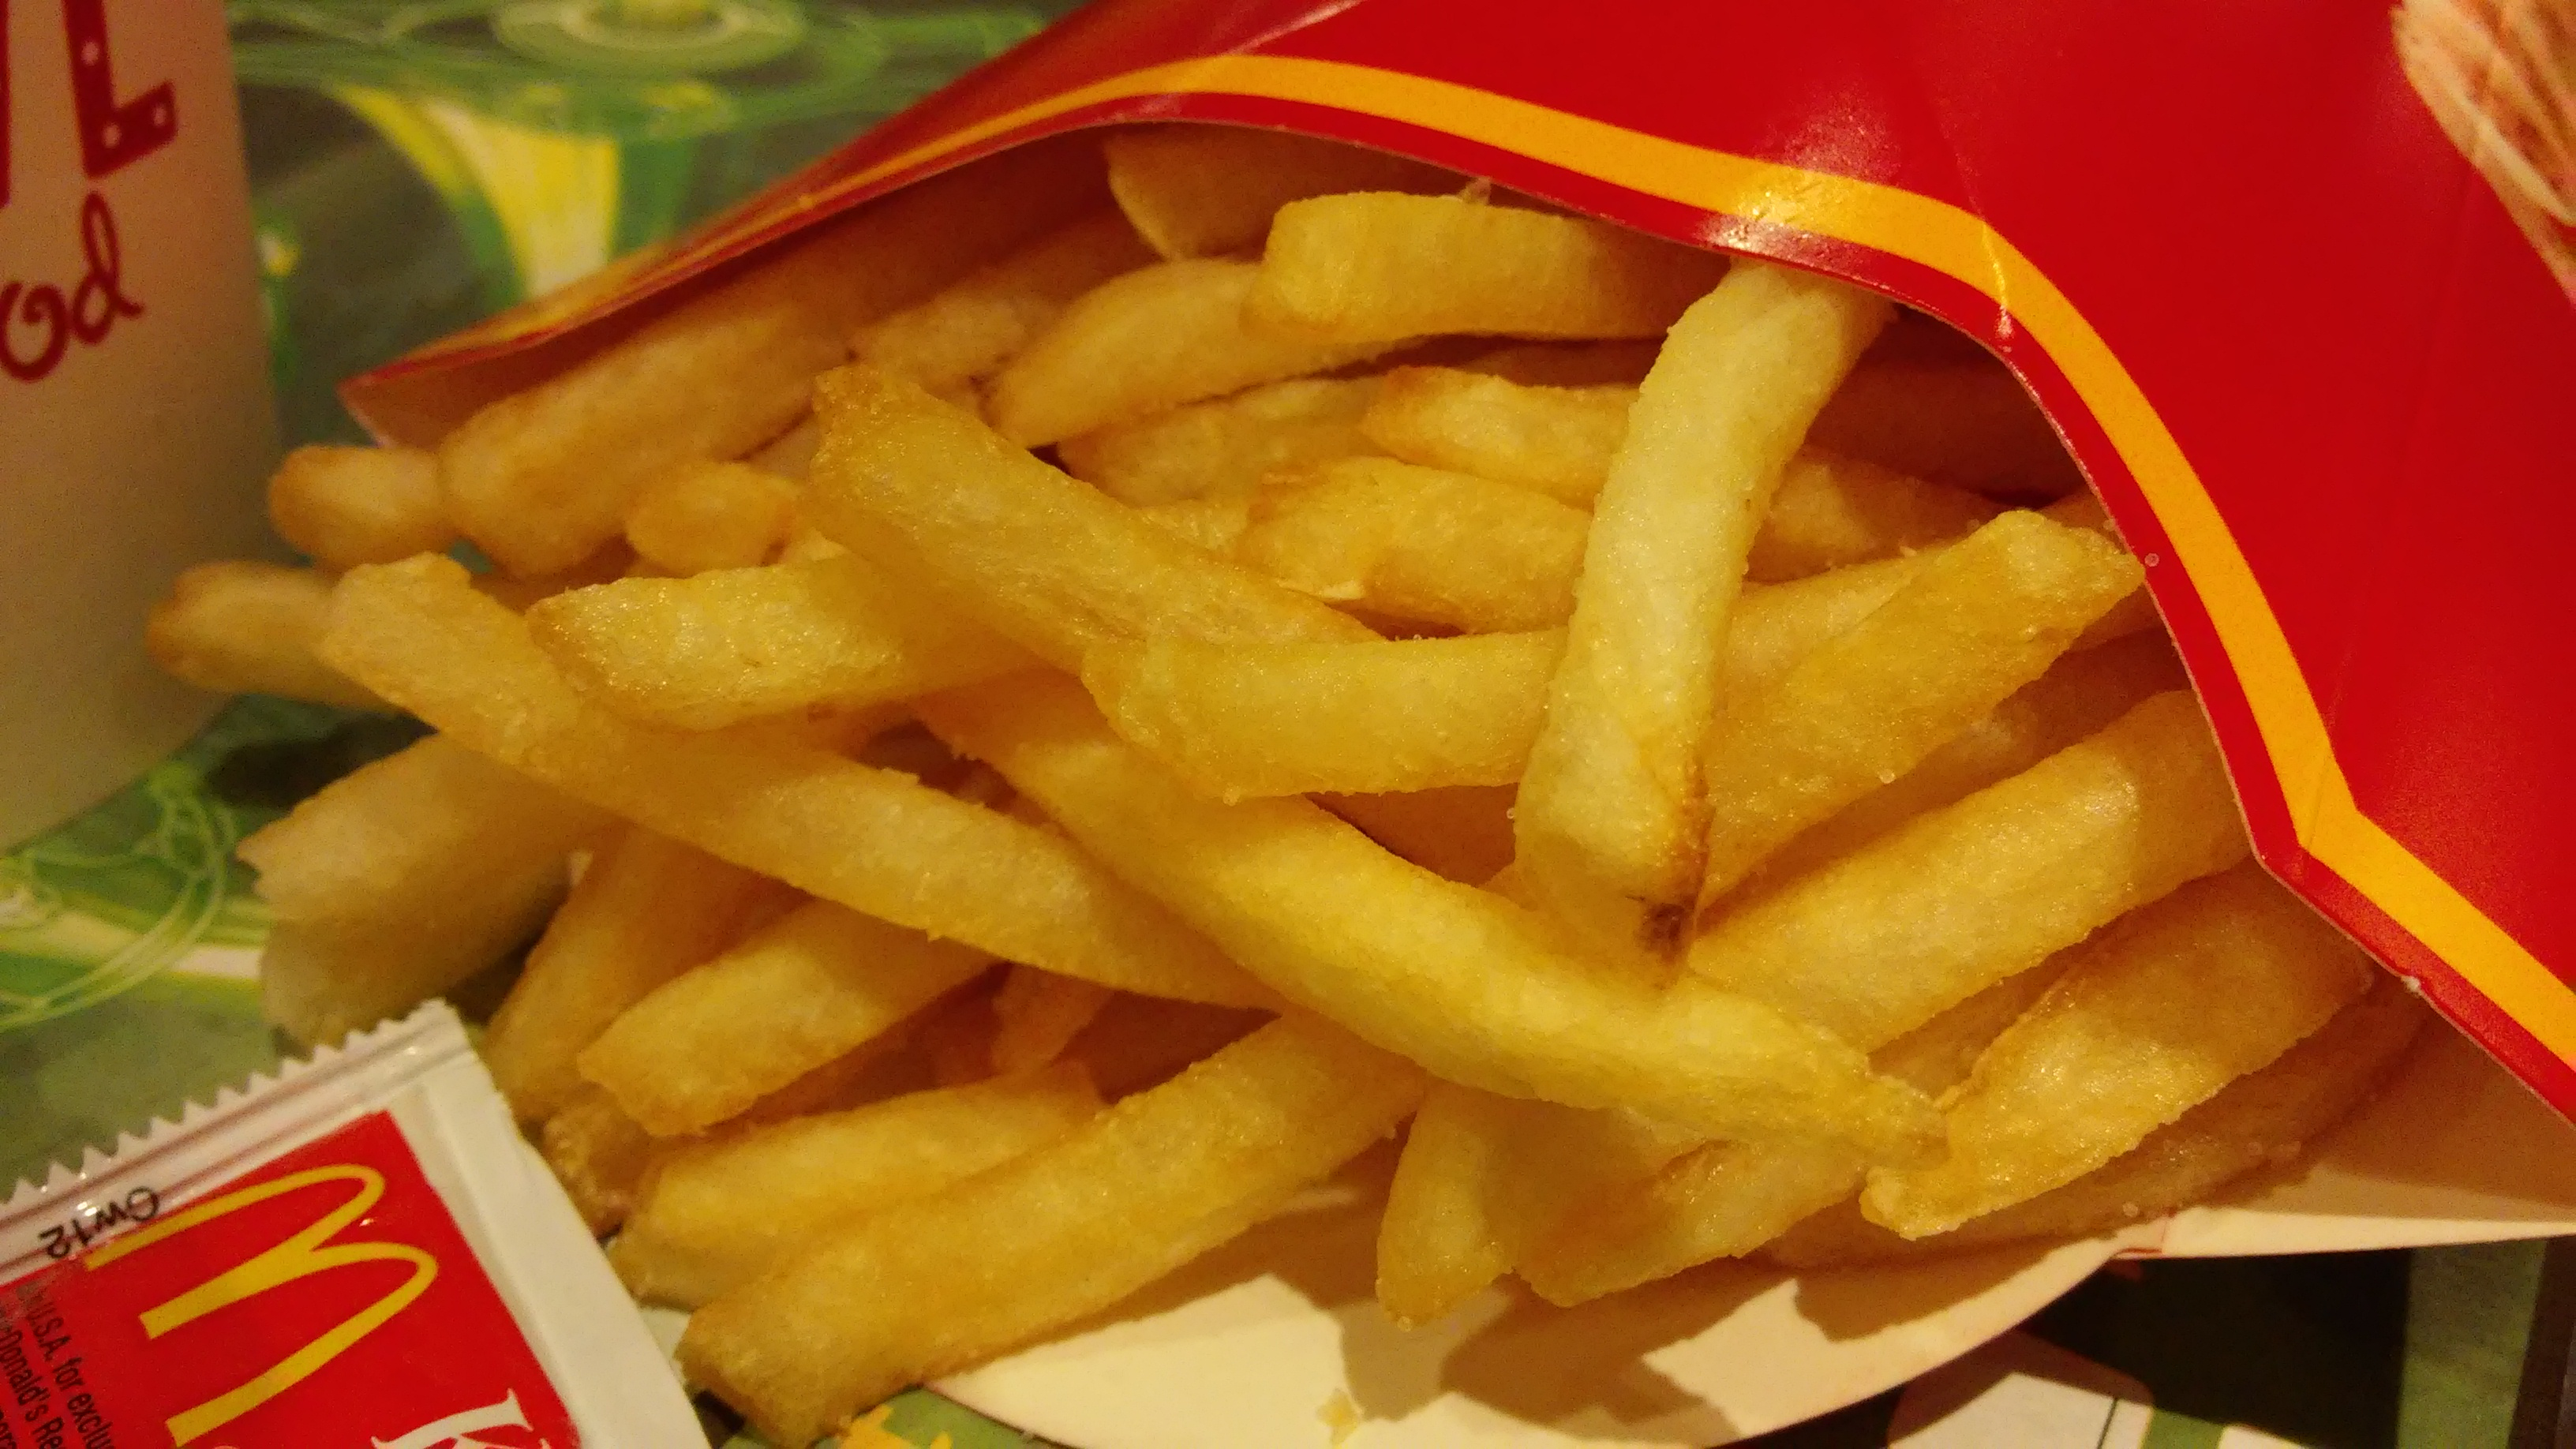 McDonald's Fries (Medium Size) = 50g carbs